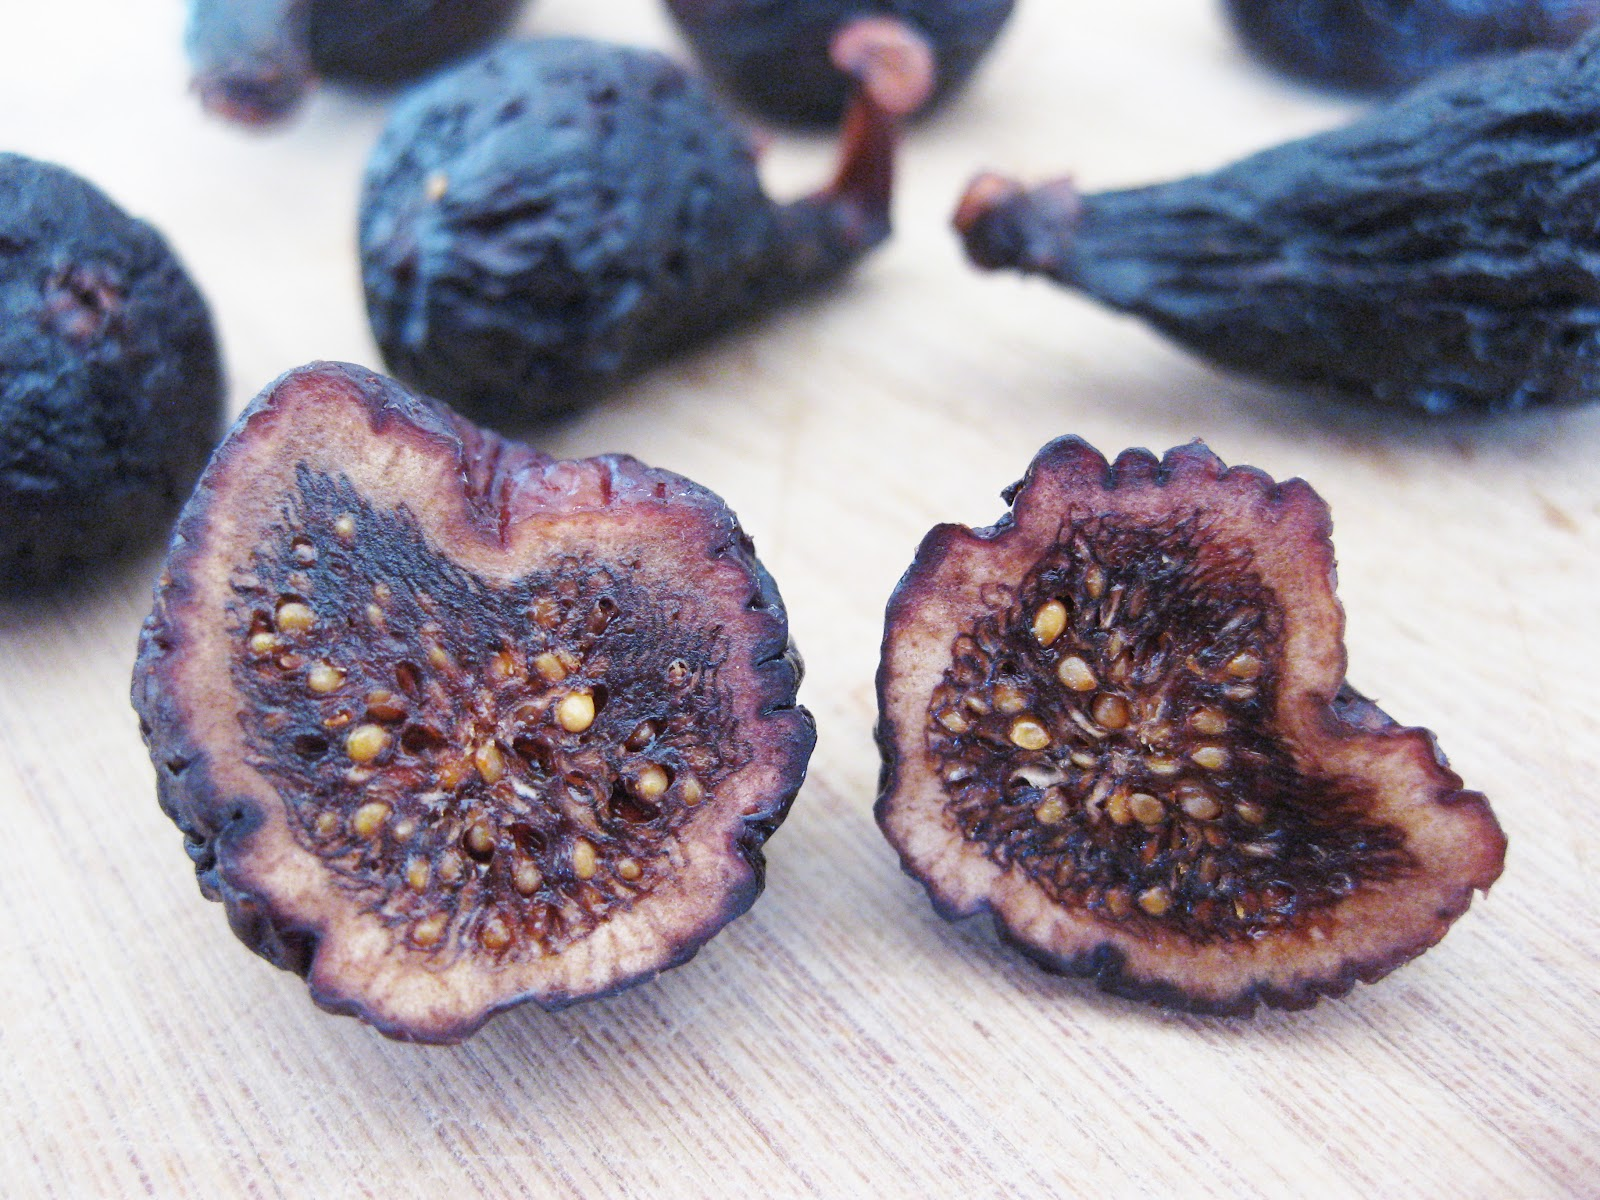 ... : Baked Goat Cheese with Caramelized Onion, Garlic & Mission Figs